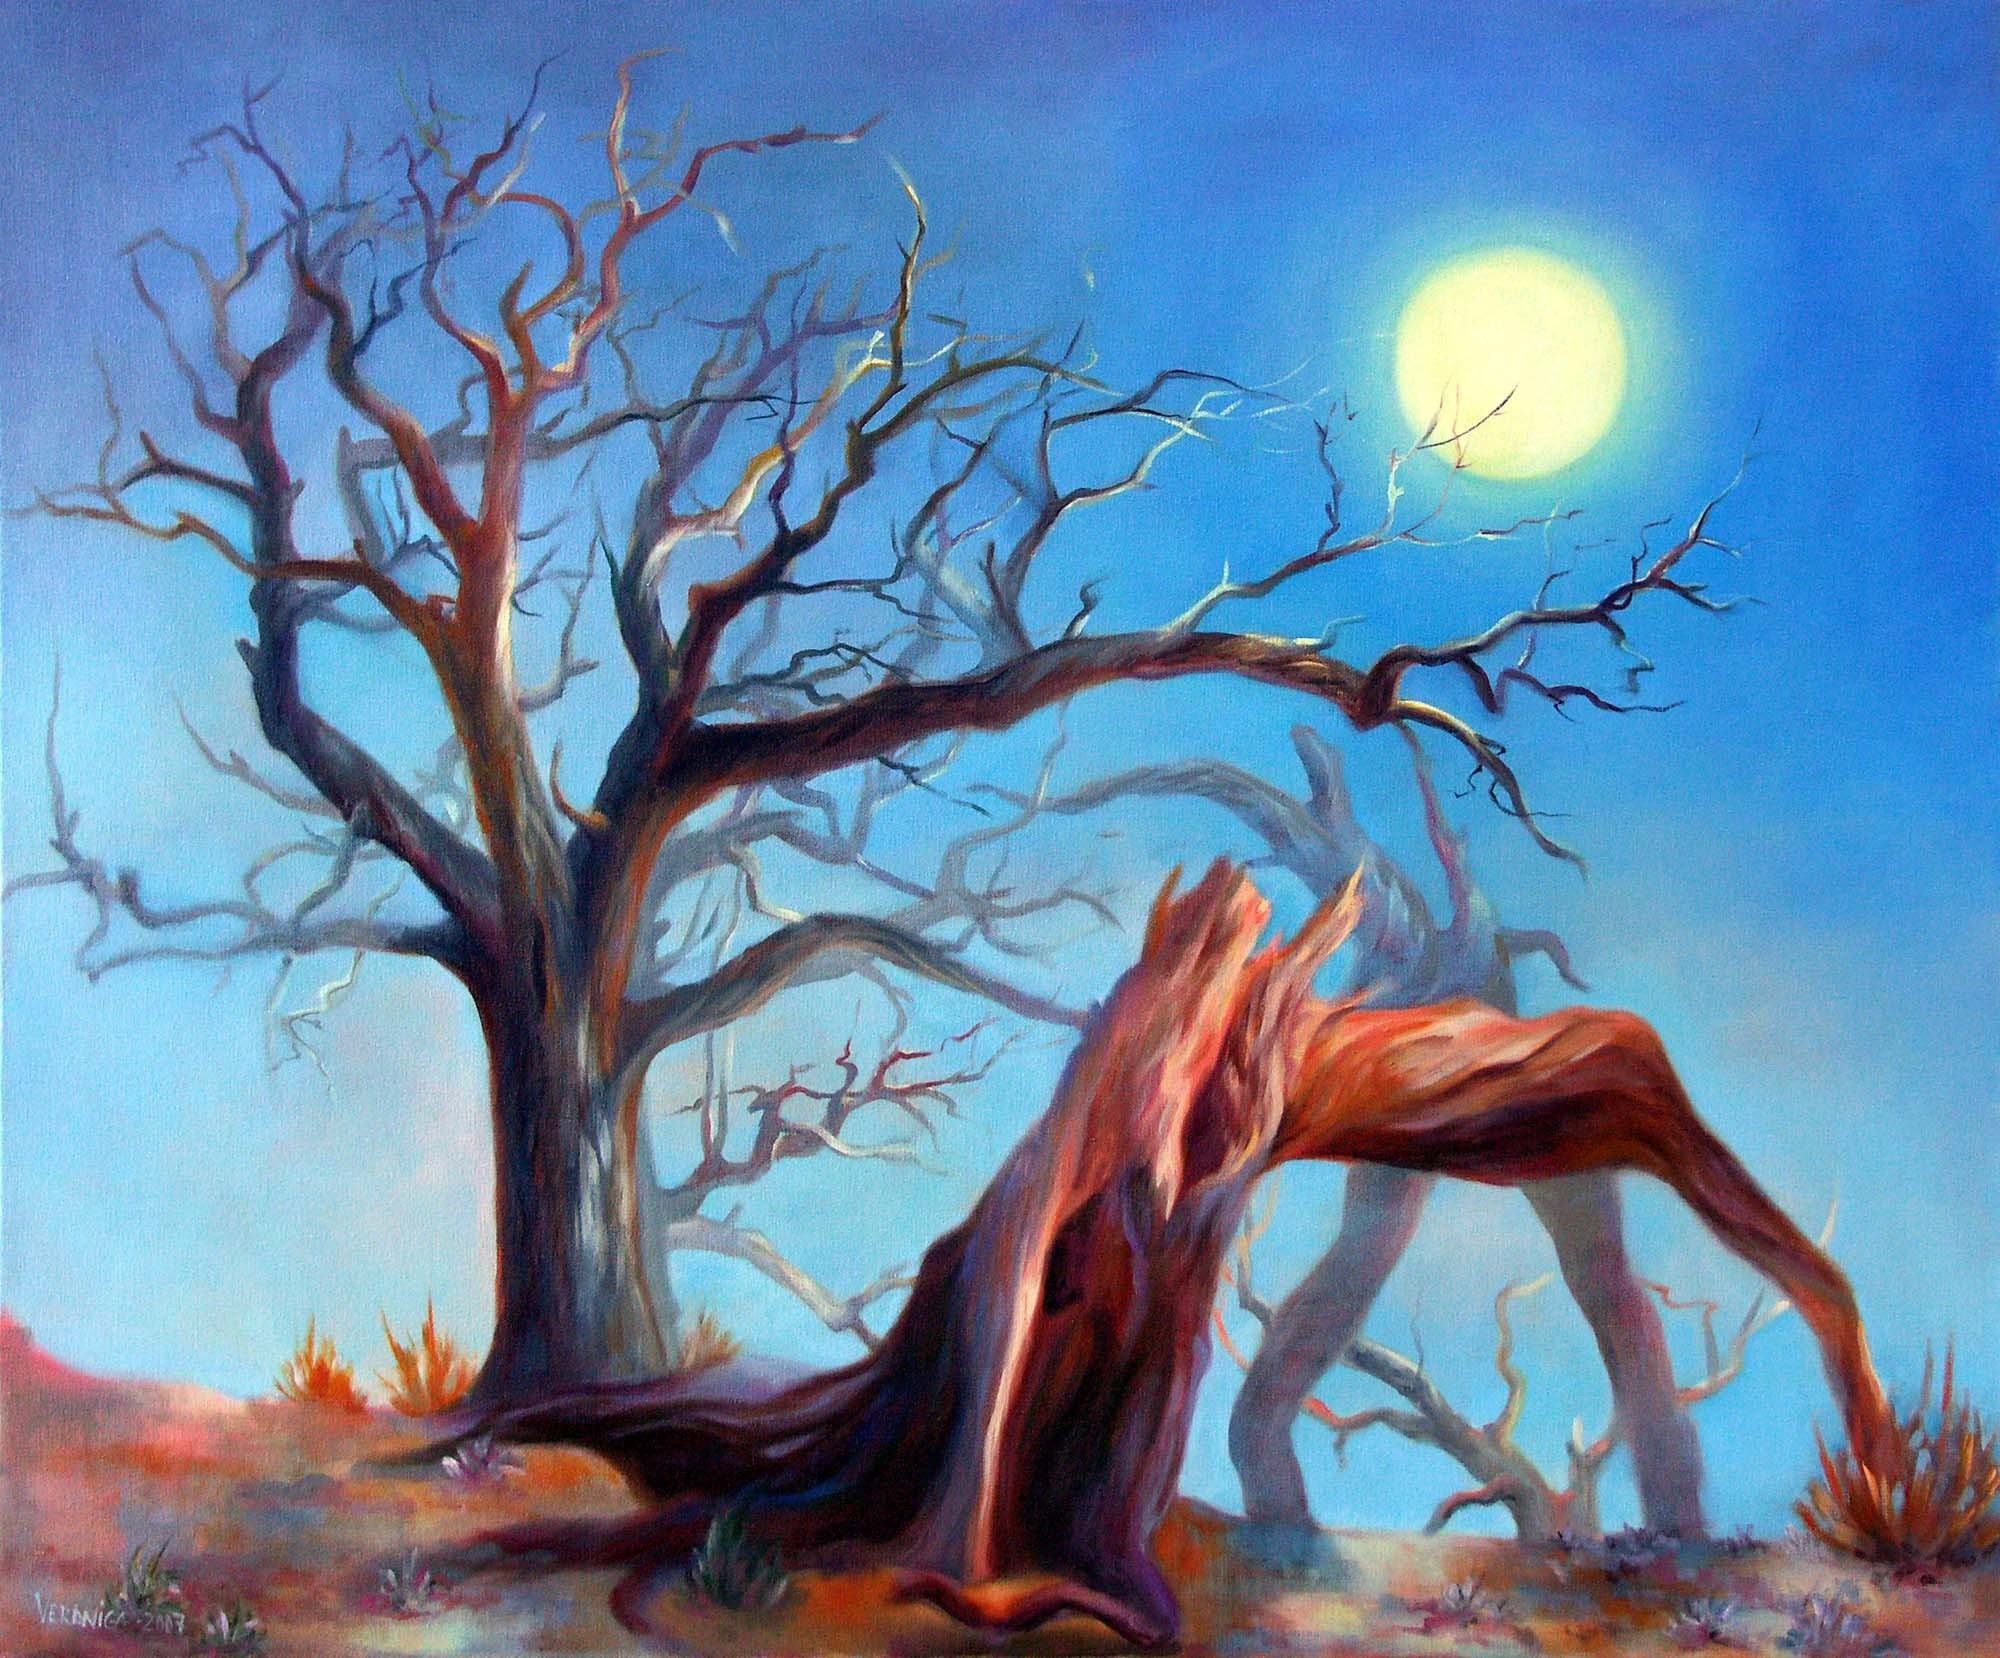 surrealist tree with the moon 16x20 glossy metallic print